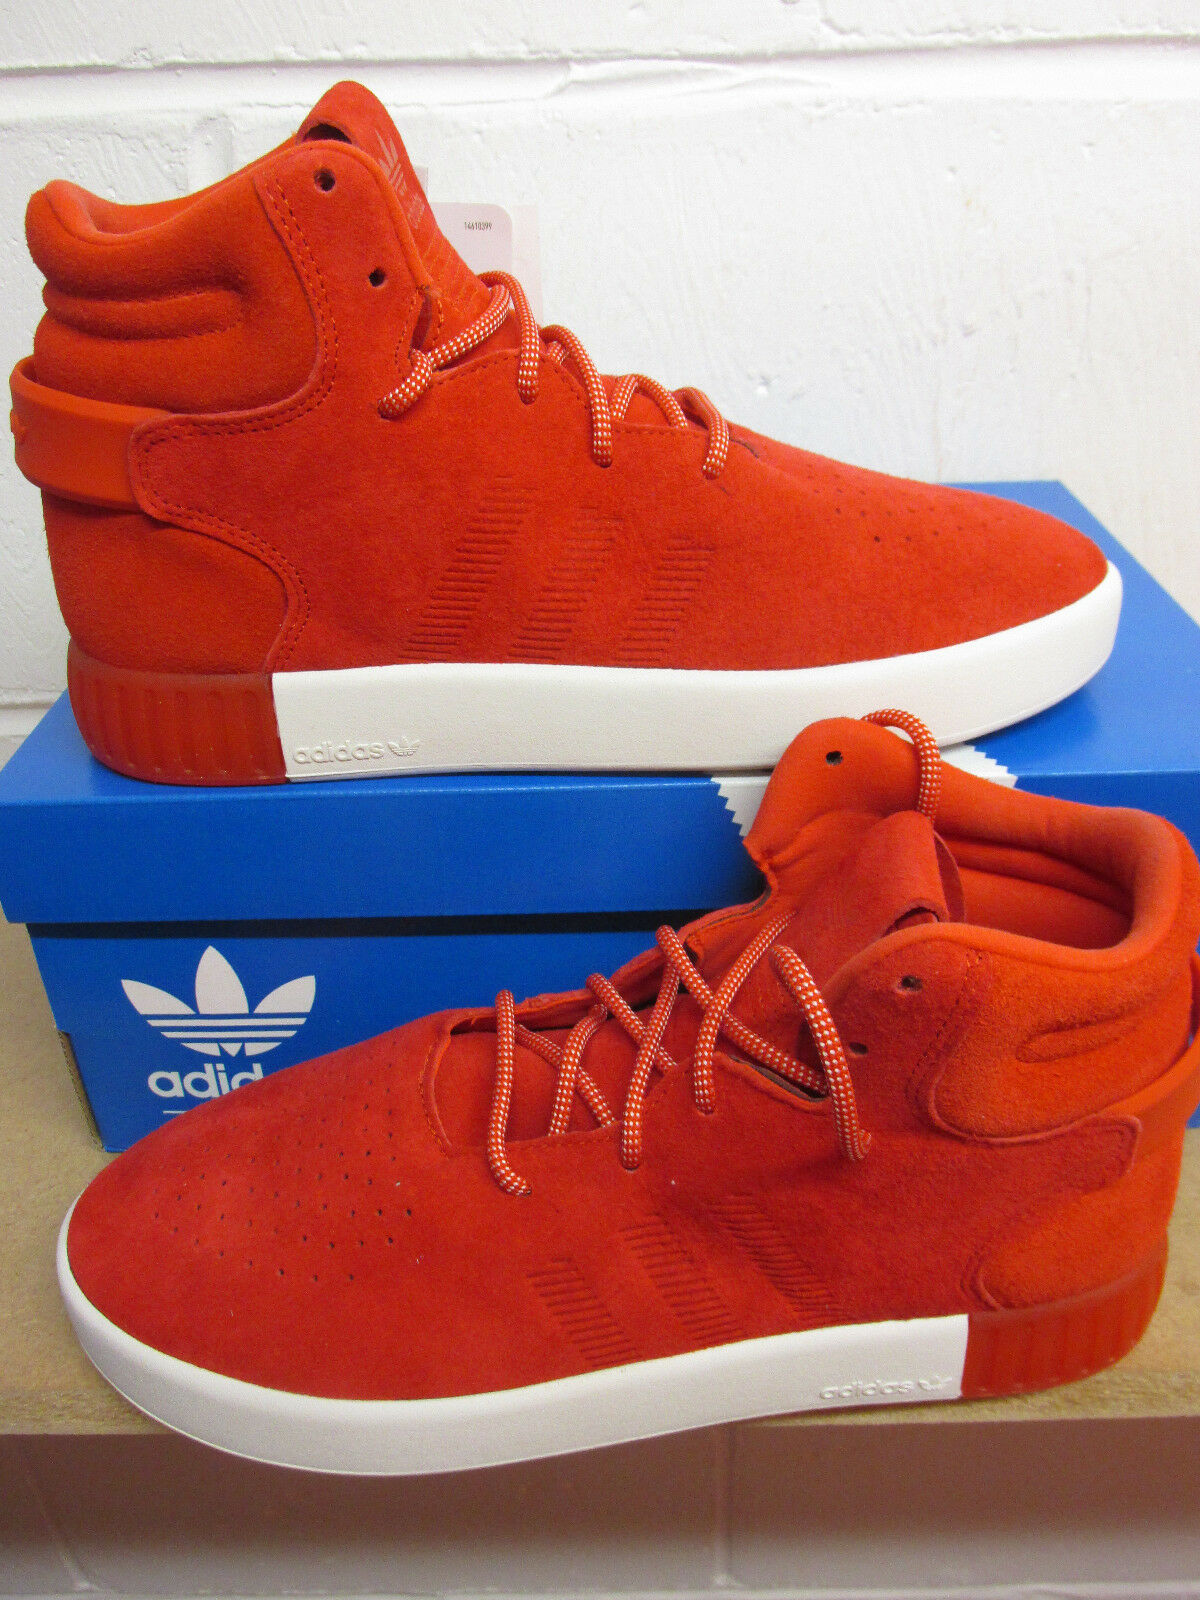 Adidas Zapatillas Originals Tubular Invader Tira Zapatillas Adidas Hi Top S80244 Zapatillas 609f7c